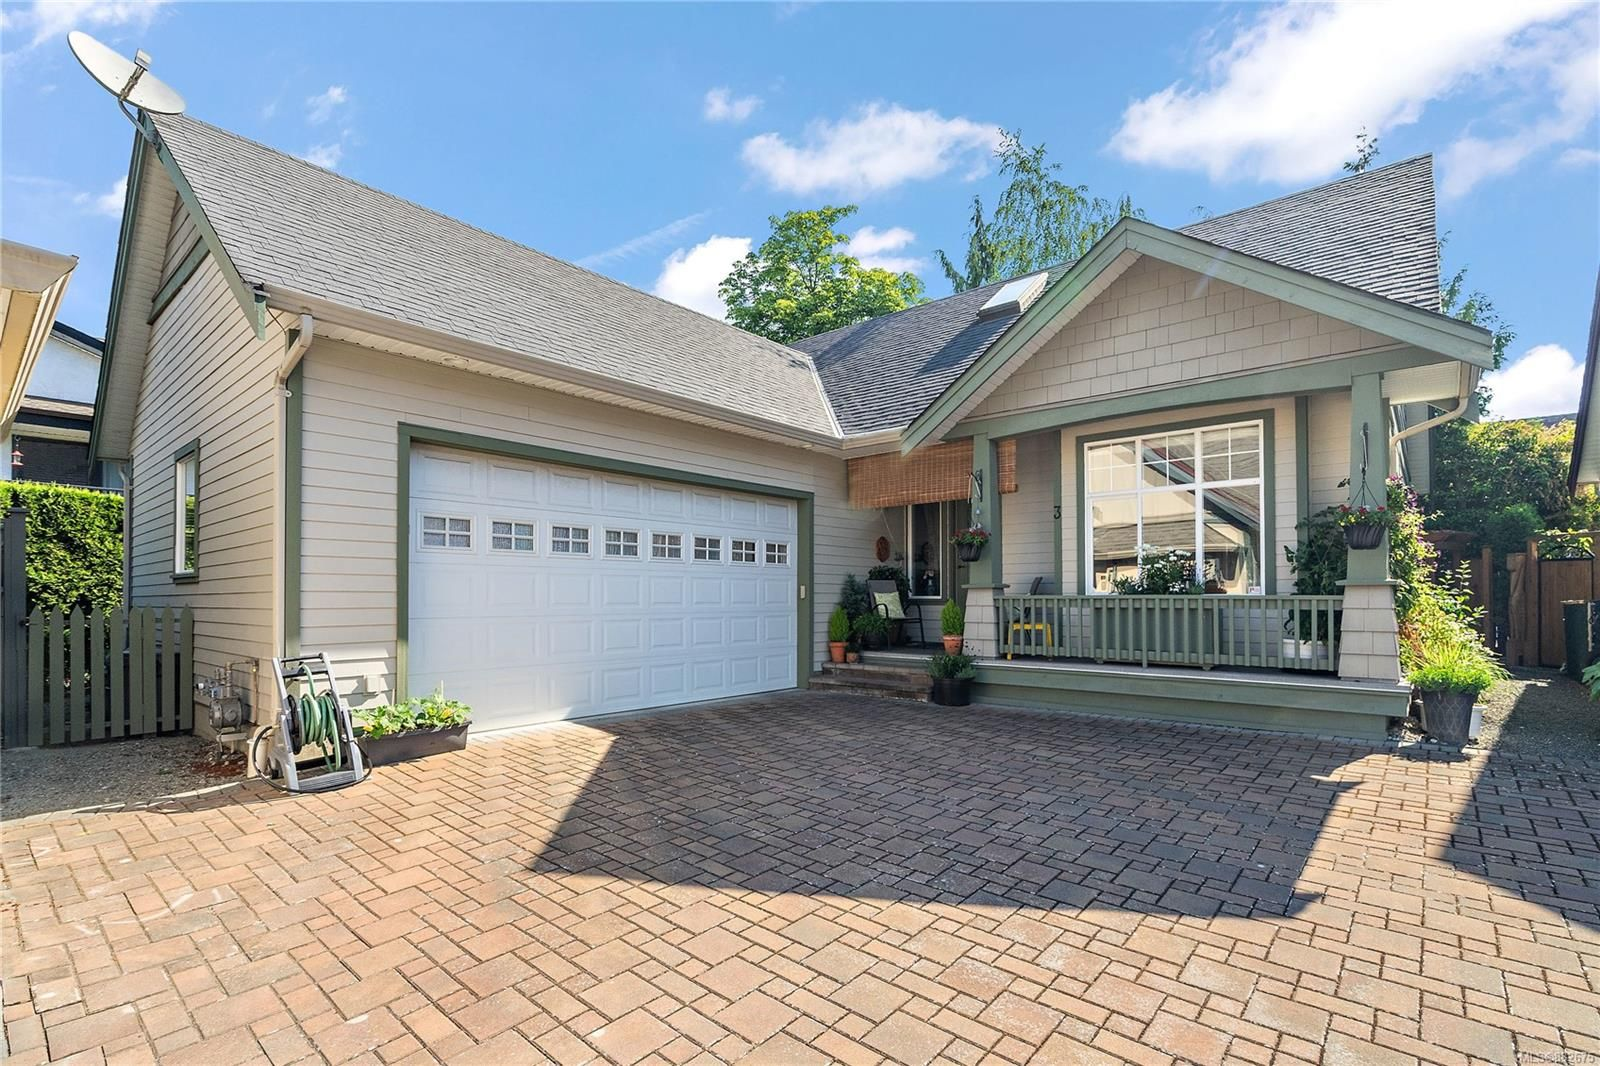 Main Photo: 3 9871 Resthaven Dr in : Si Sidney North-East House for sale (Sidney)  : MLS®# 882675